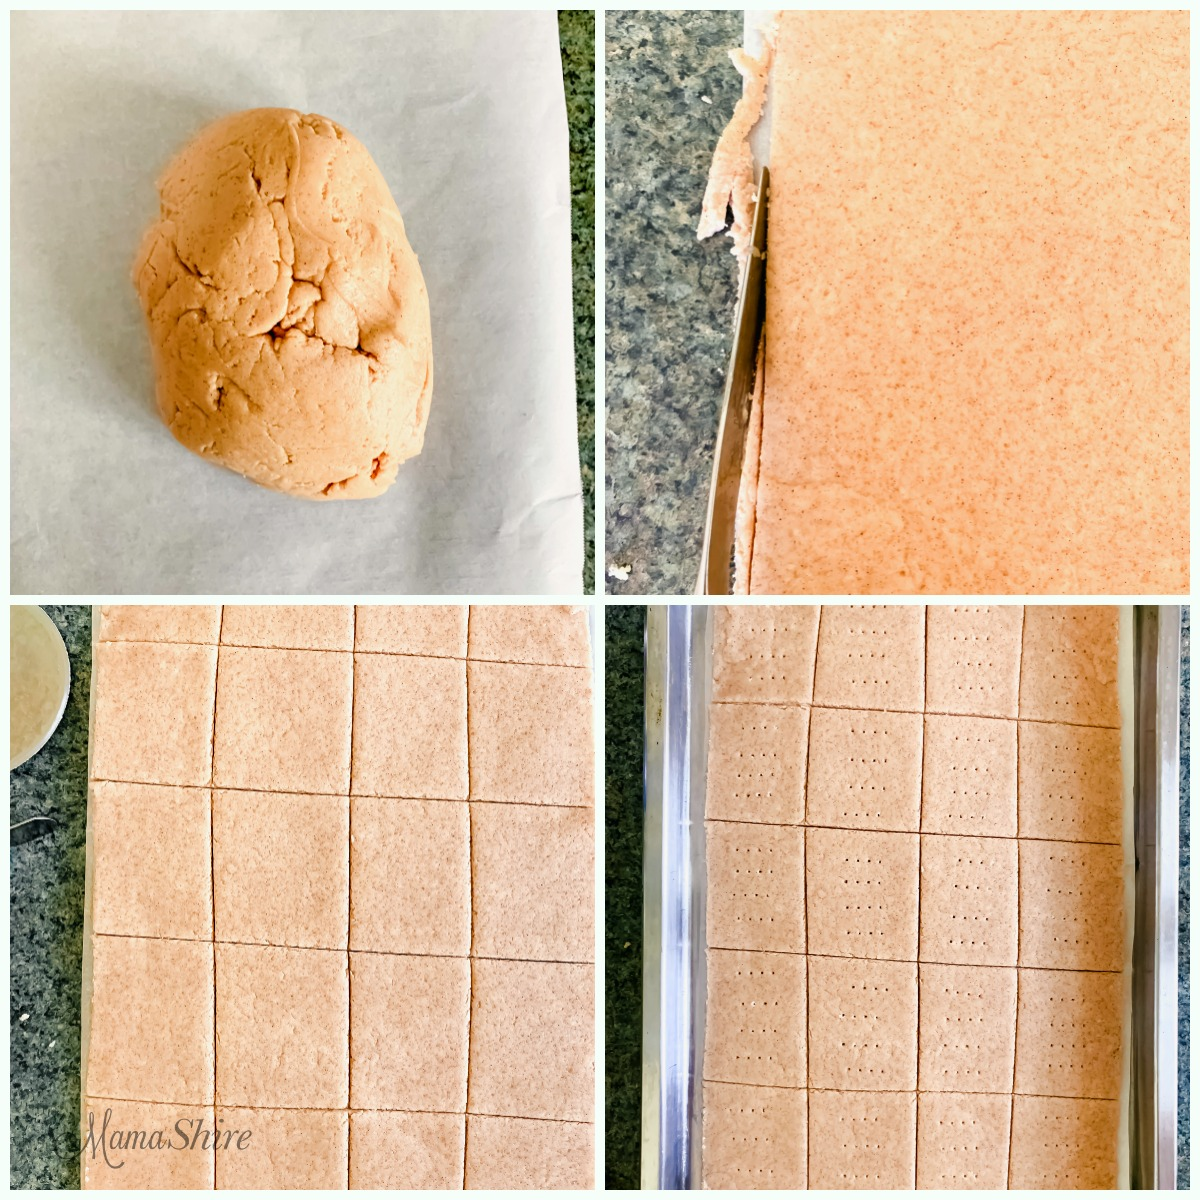 Steps to roll out the dough for making gluten-free graham crackers